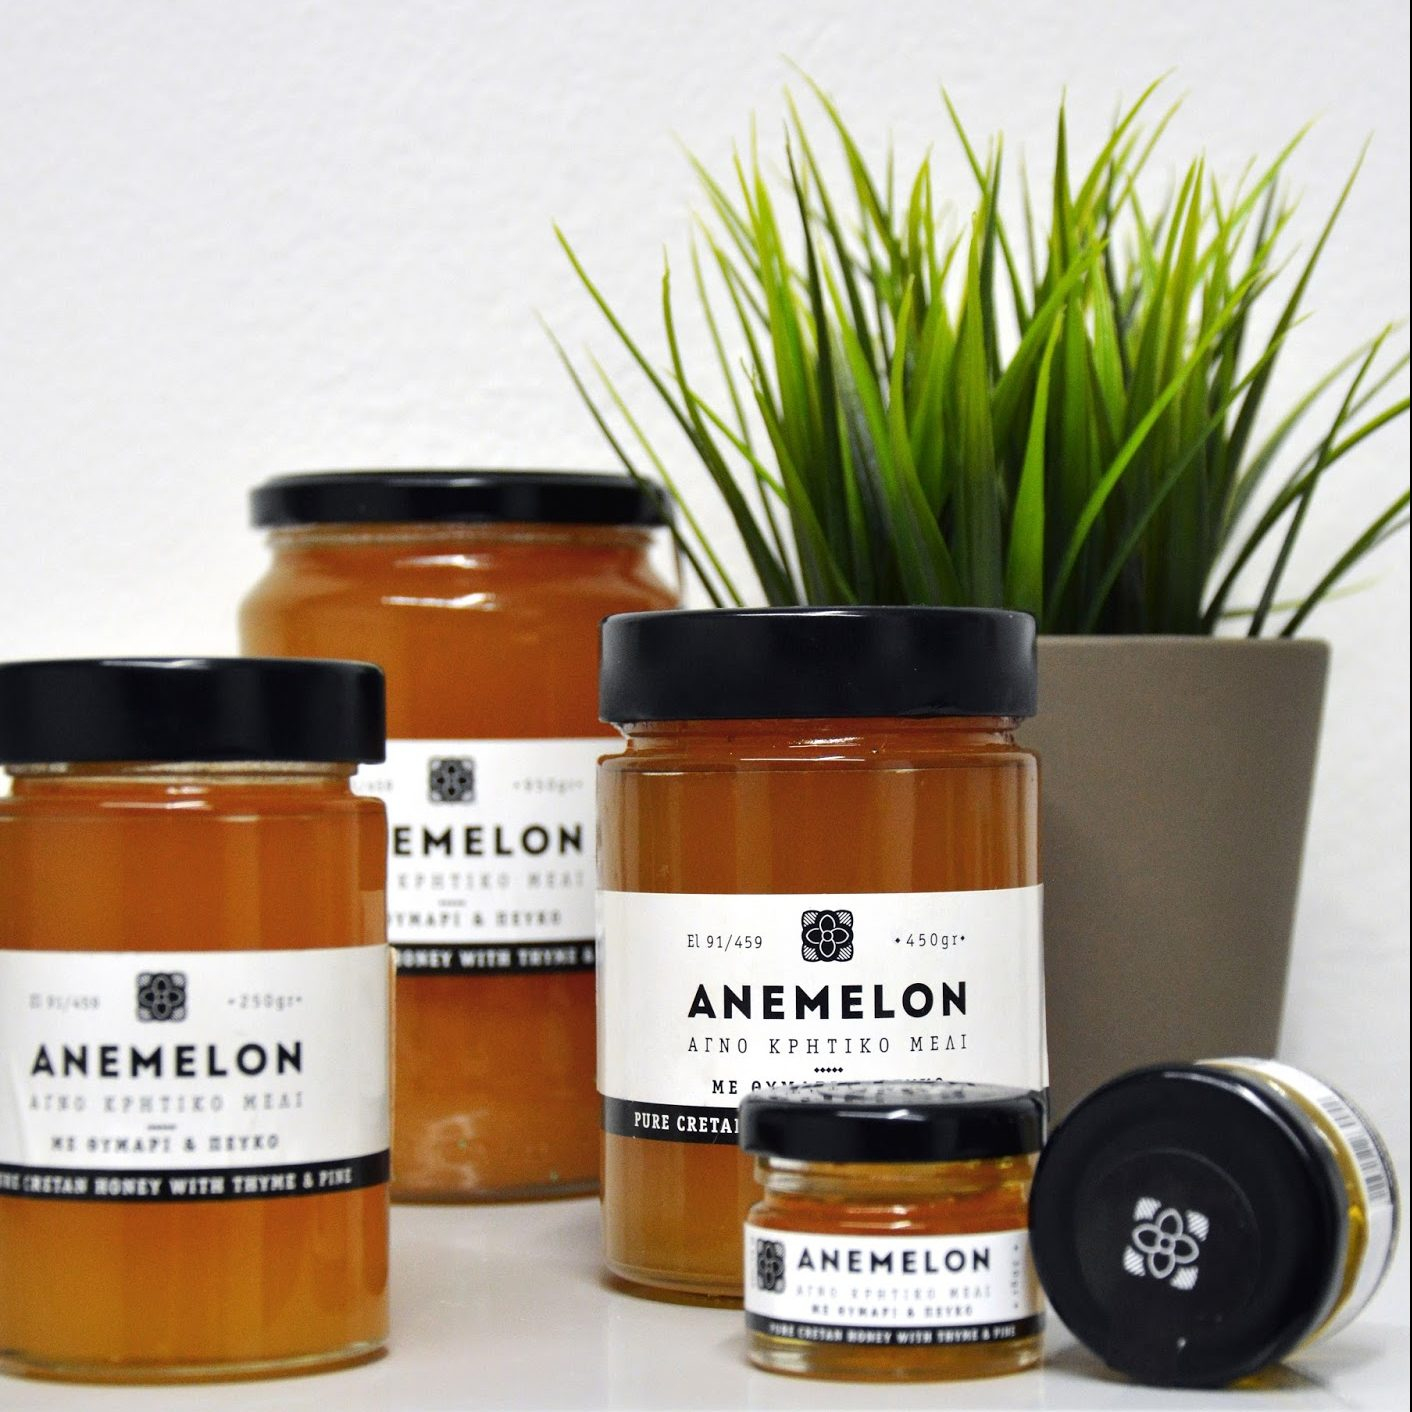 ANEMELON awarded packaging